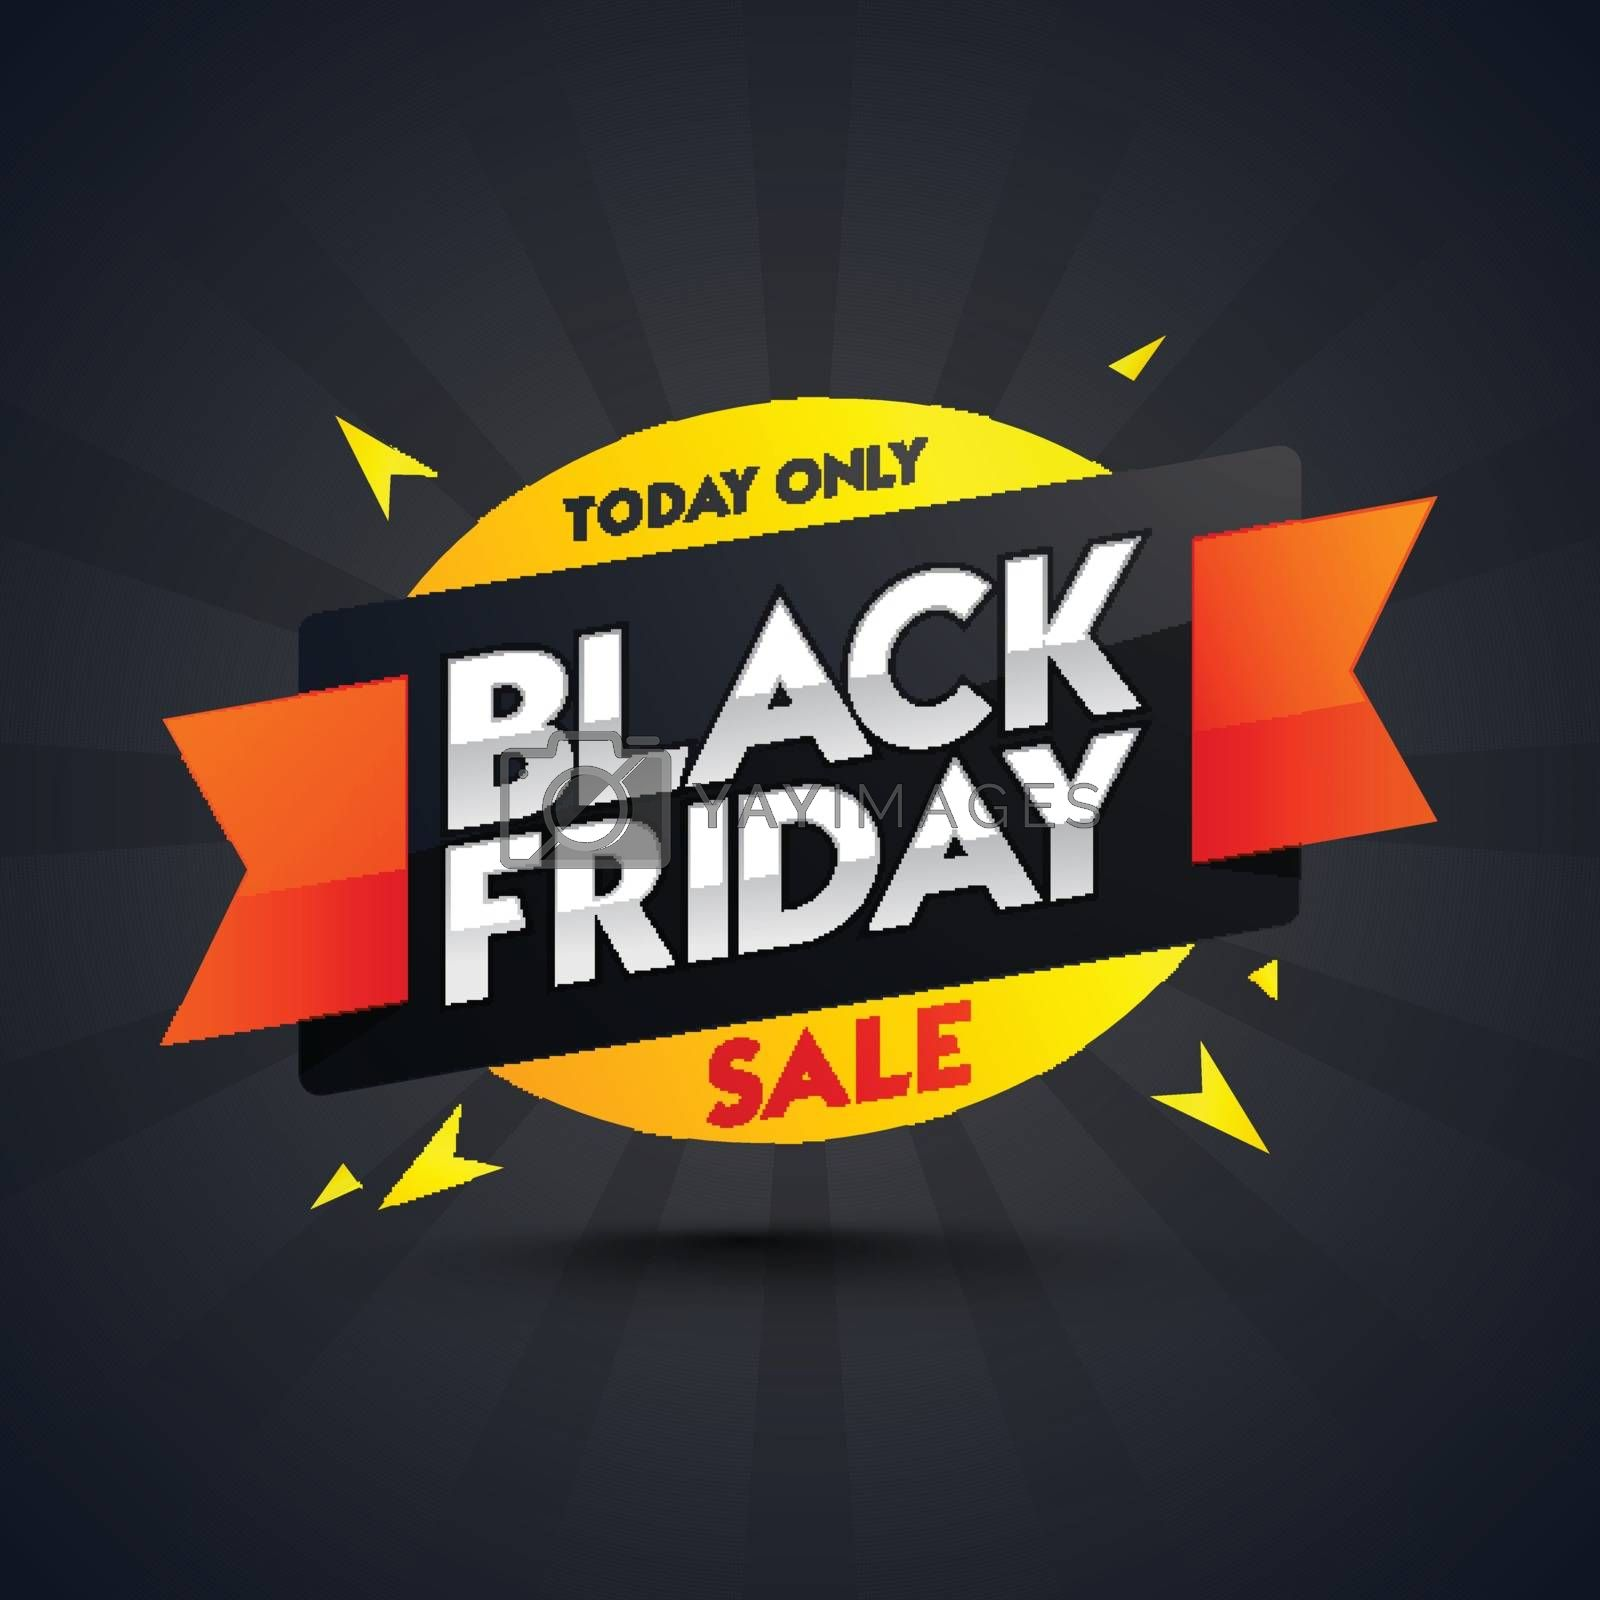 Black Friday Sale sticker or ribbon on rays background for advertisement concept.